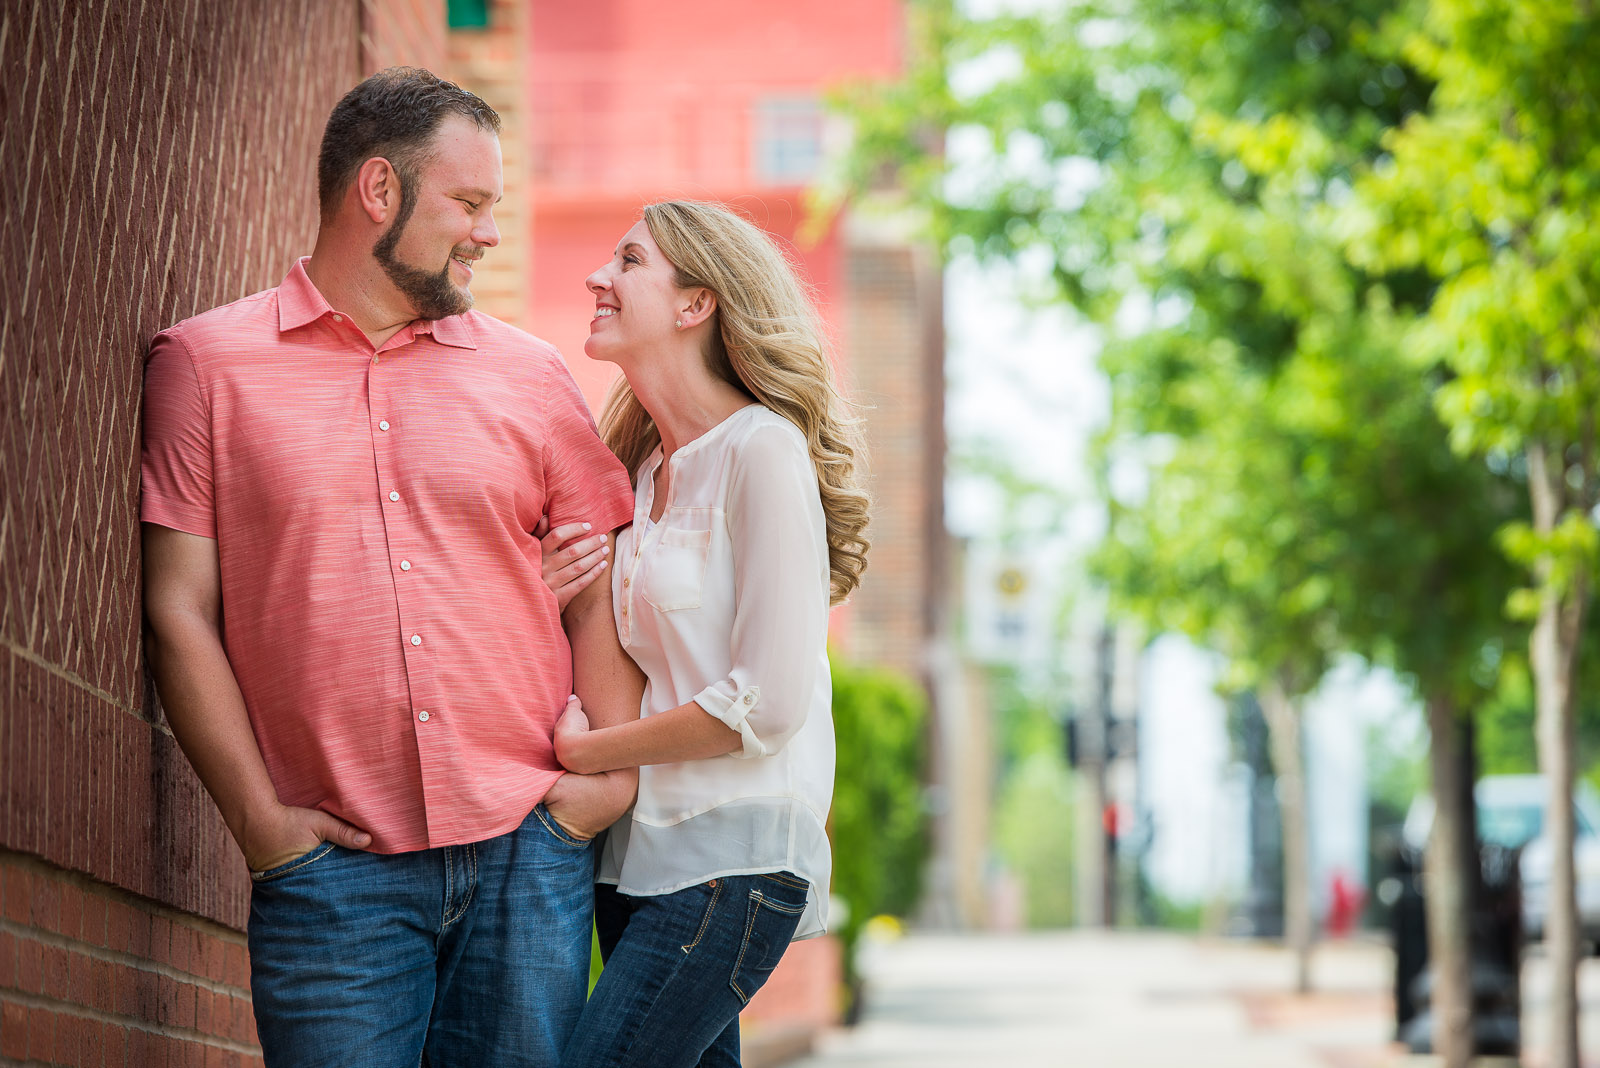 Eric_and_Christy_Photography_Blog_Kelly_Matt_Engagement-15